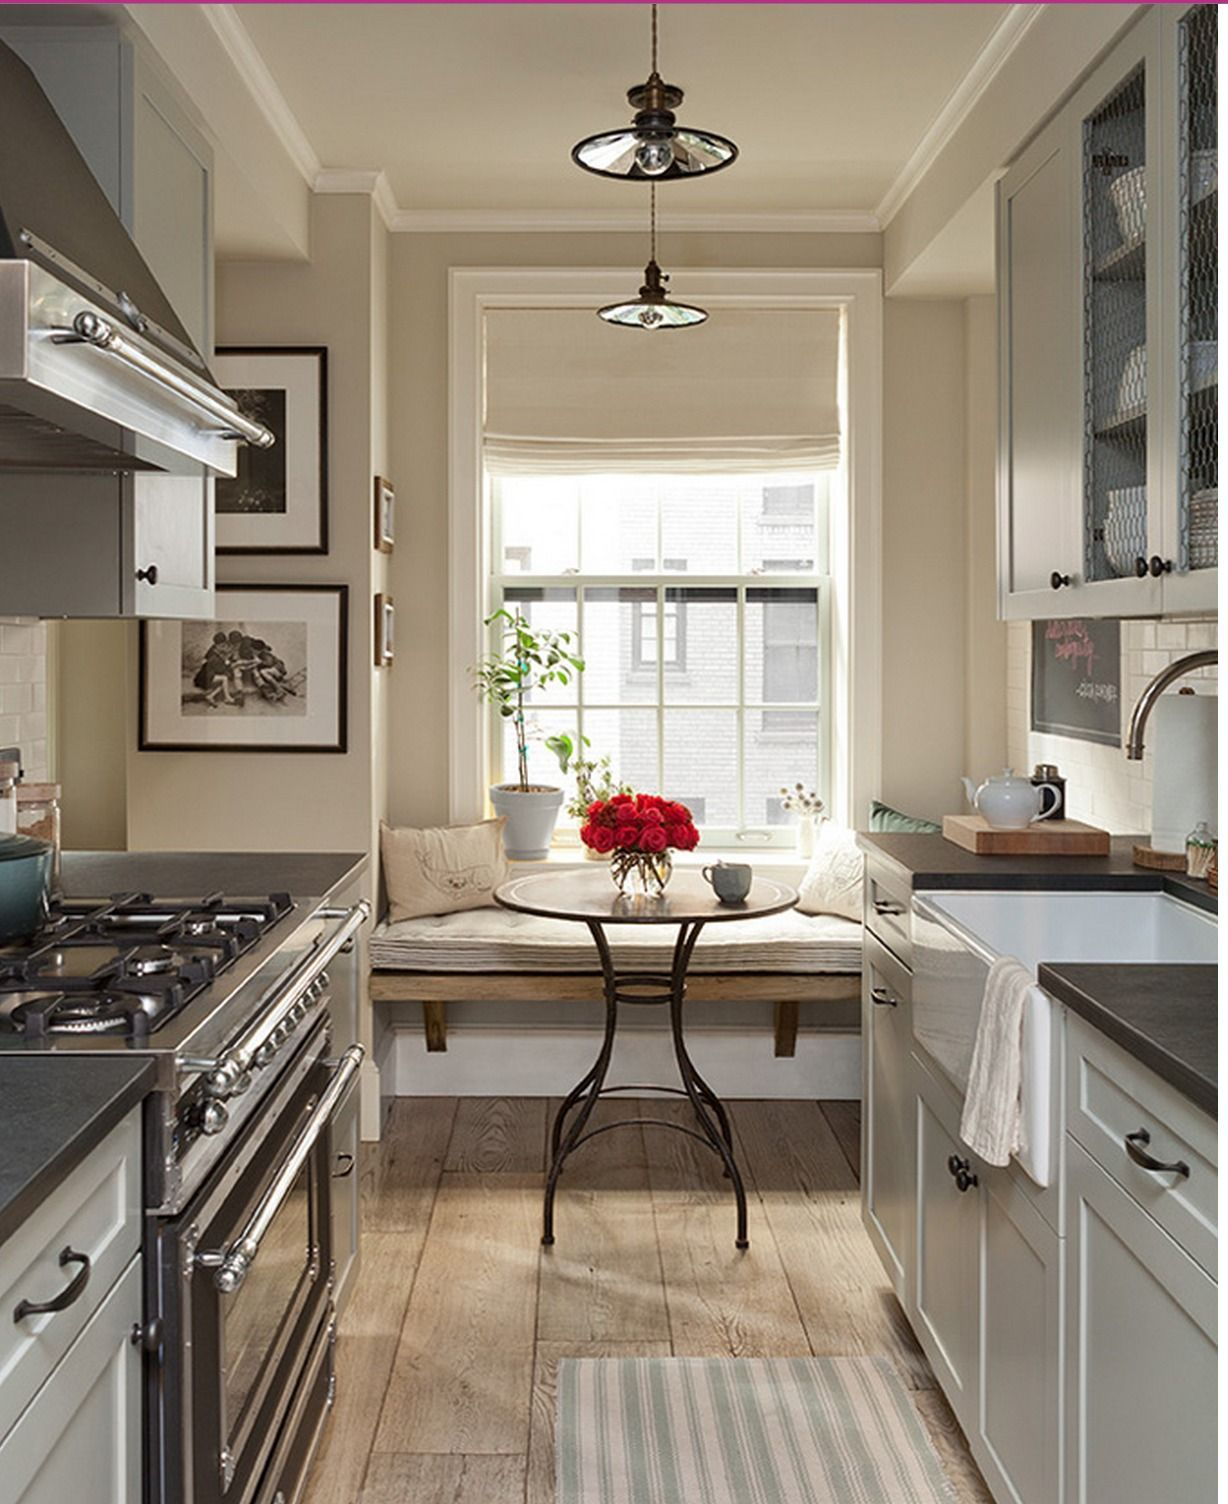 10 Beautiful Kitchen Lighting Ideas Pictures For Small ...